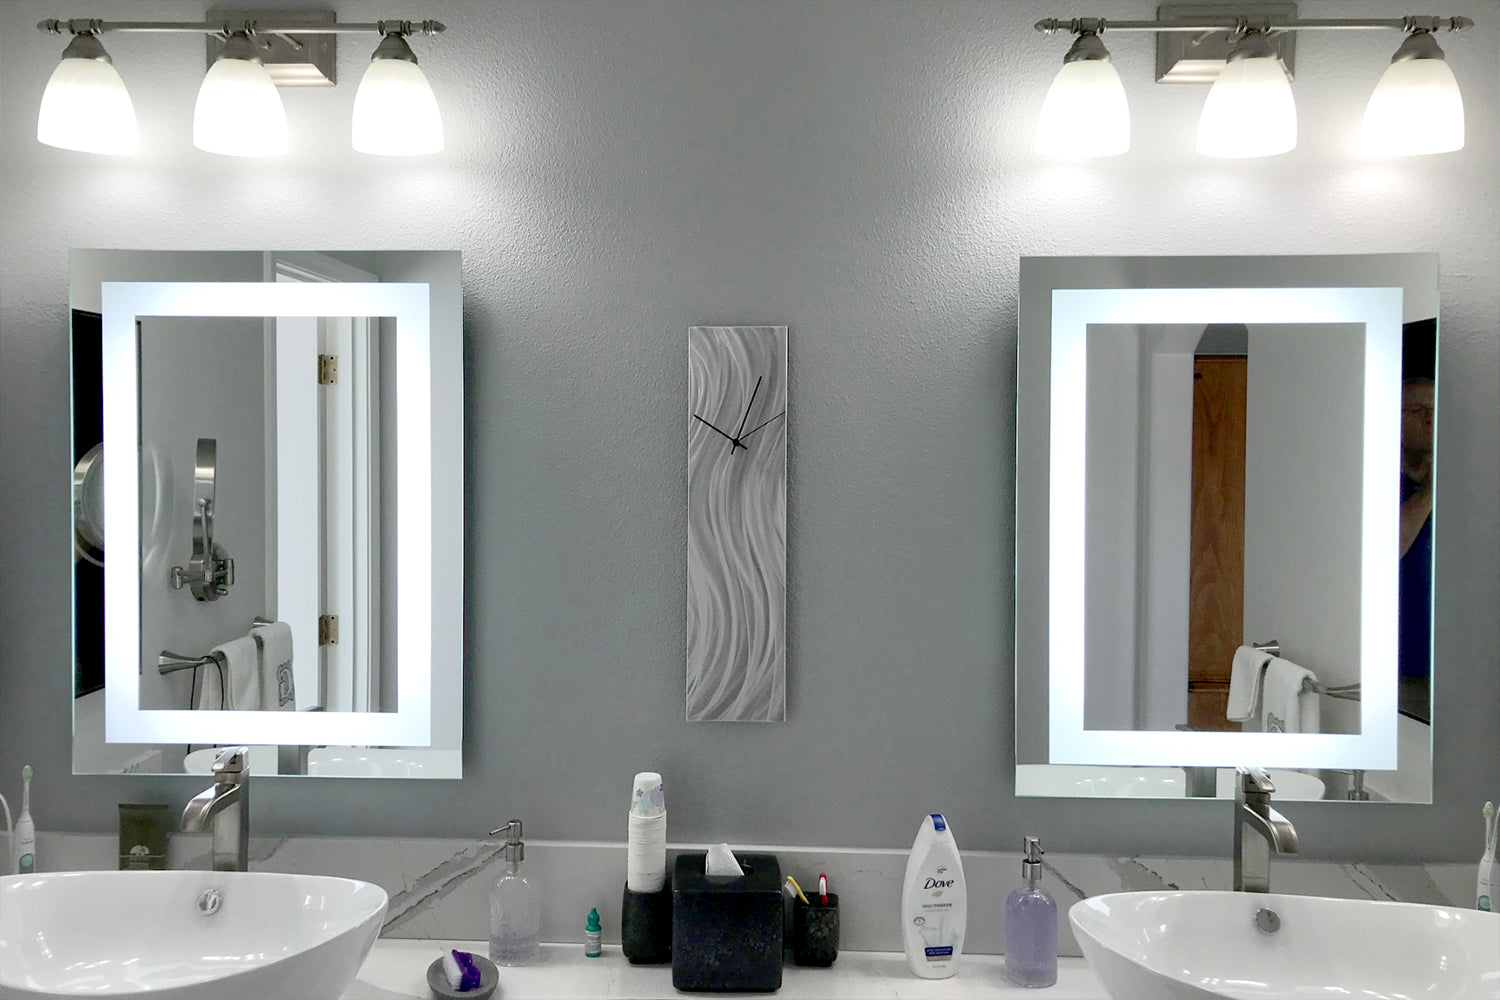 Front Lighted Led Bathroom Vanity Mirror 24 X 32 Rectangular Mirrors Marble